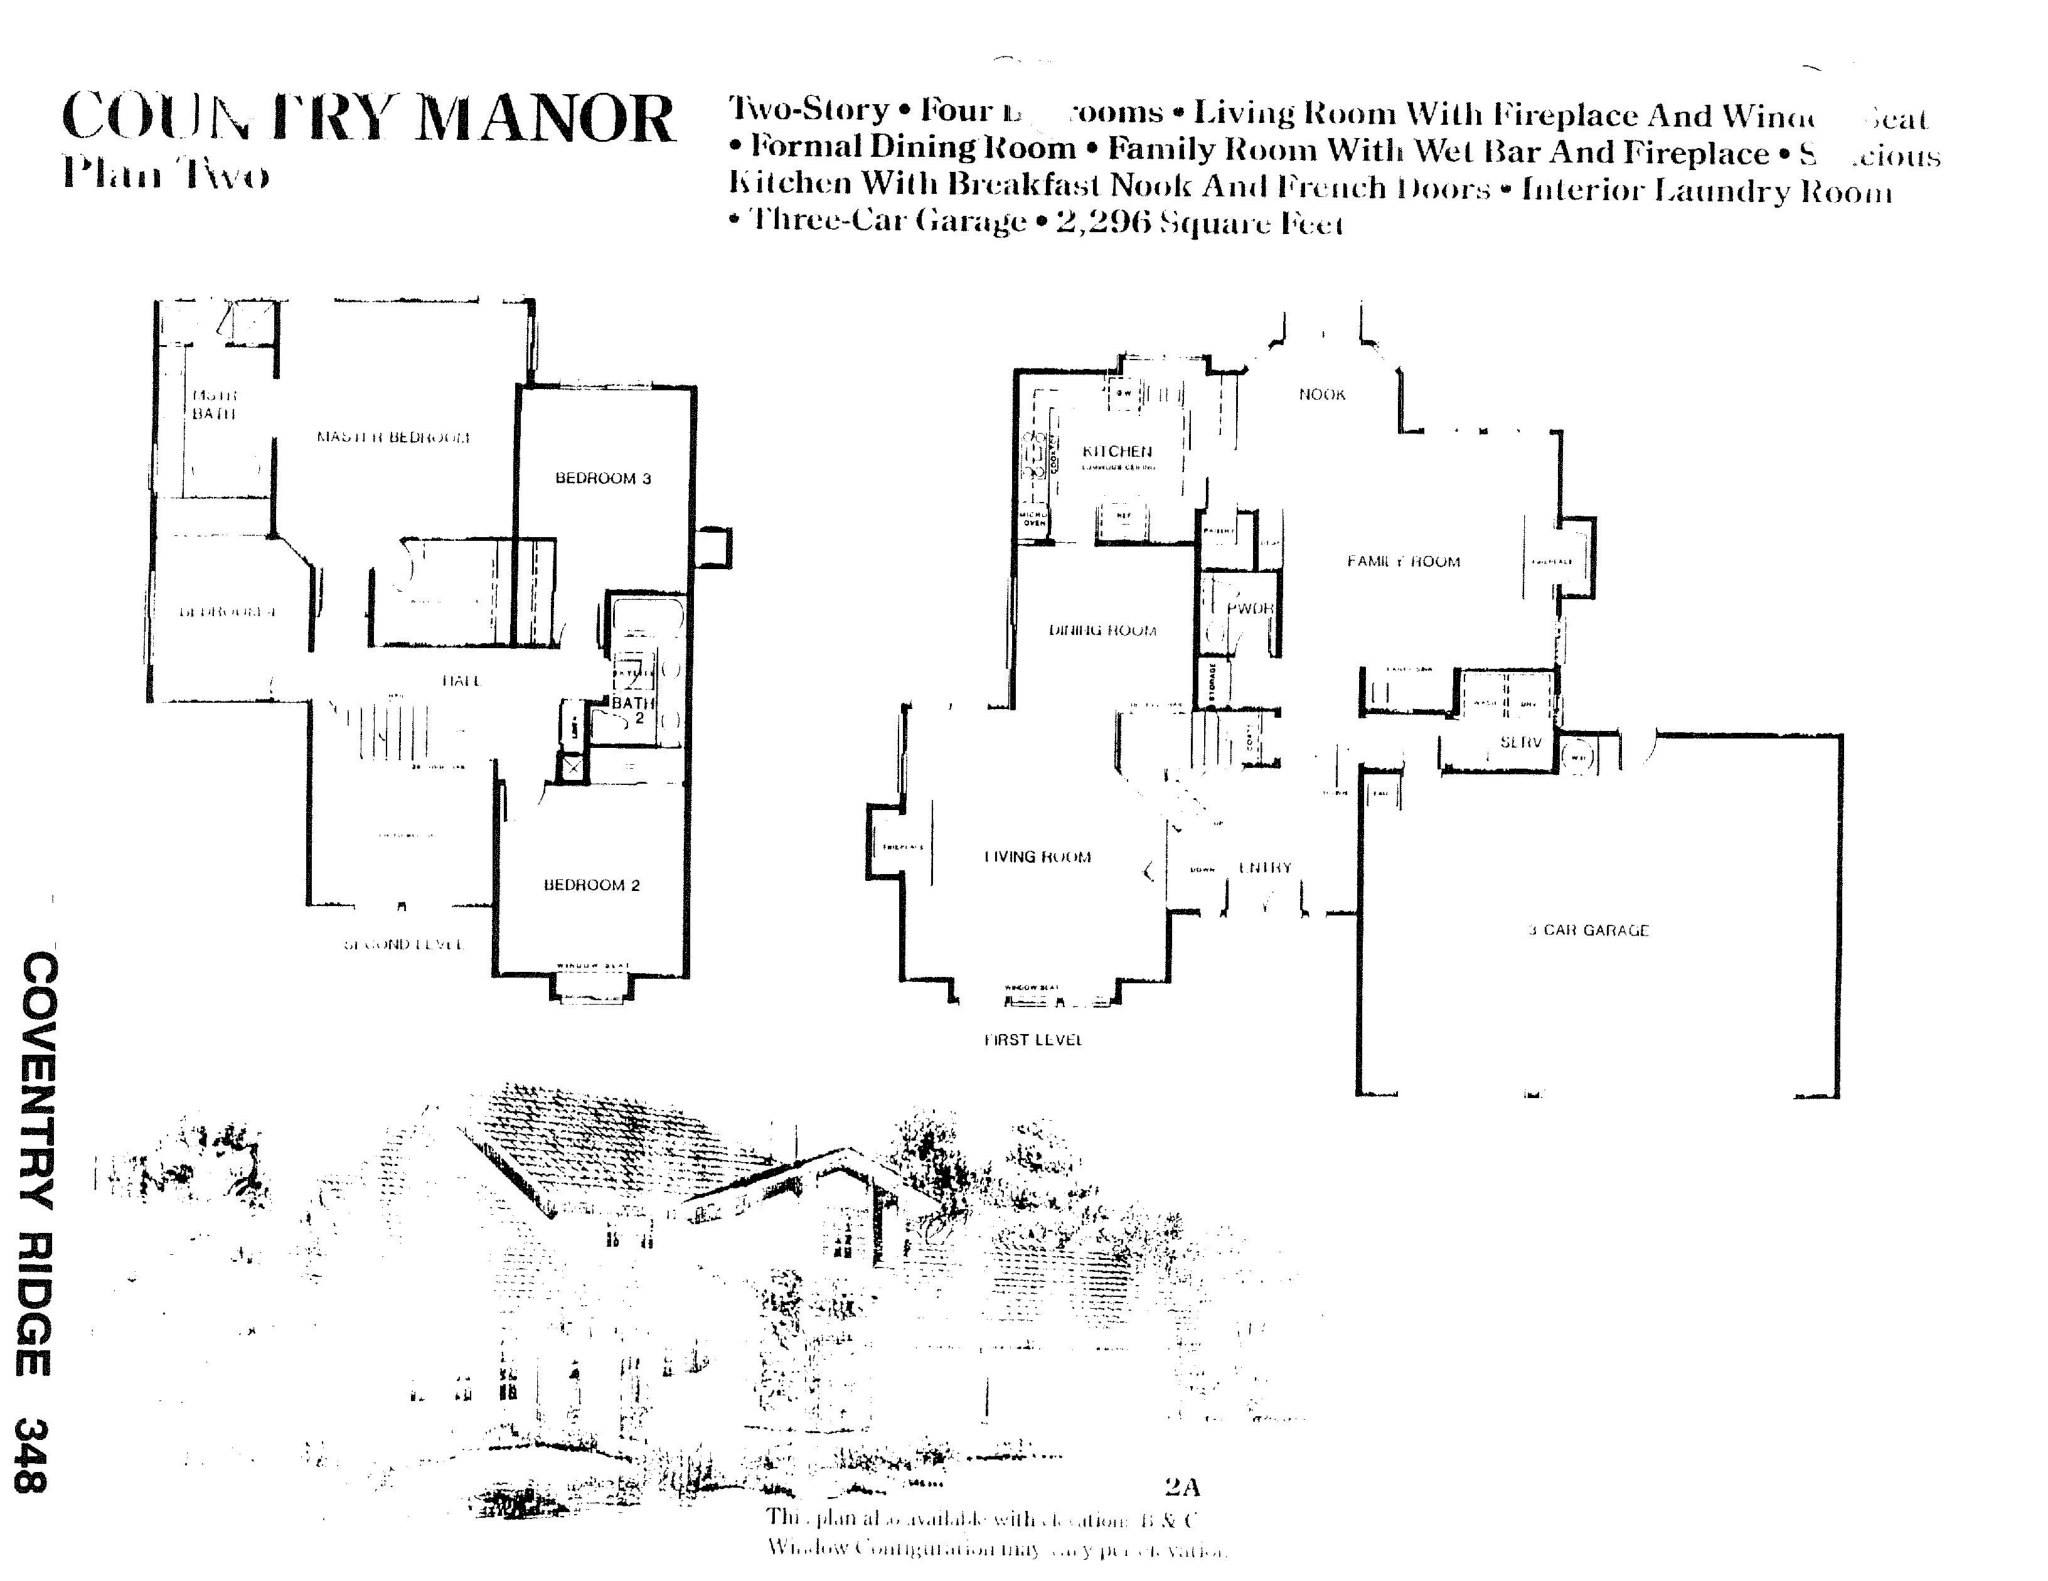 Coventry Ridge - Country Manor - Plan Two